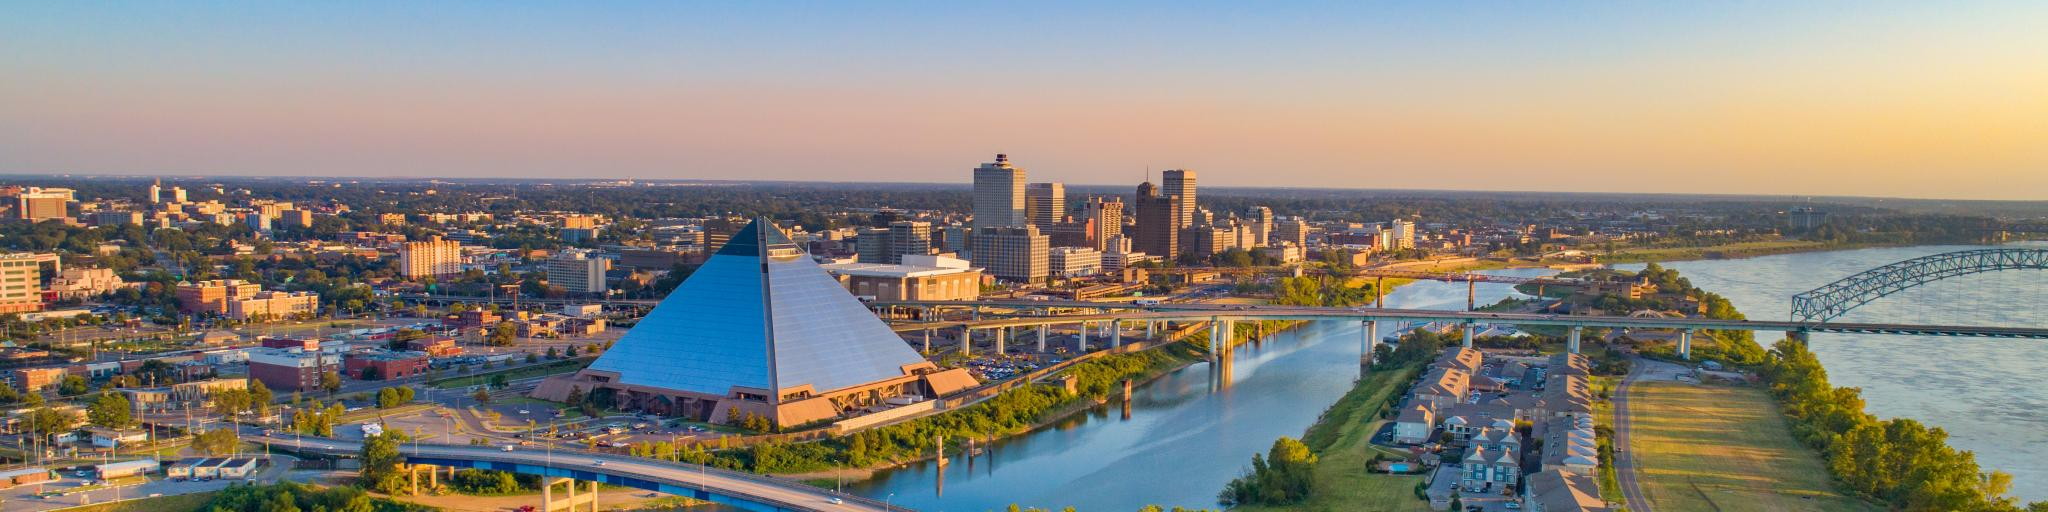 View of the city skyline of Memphis, Tennessee and the Mississippi river on a beautiful morning